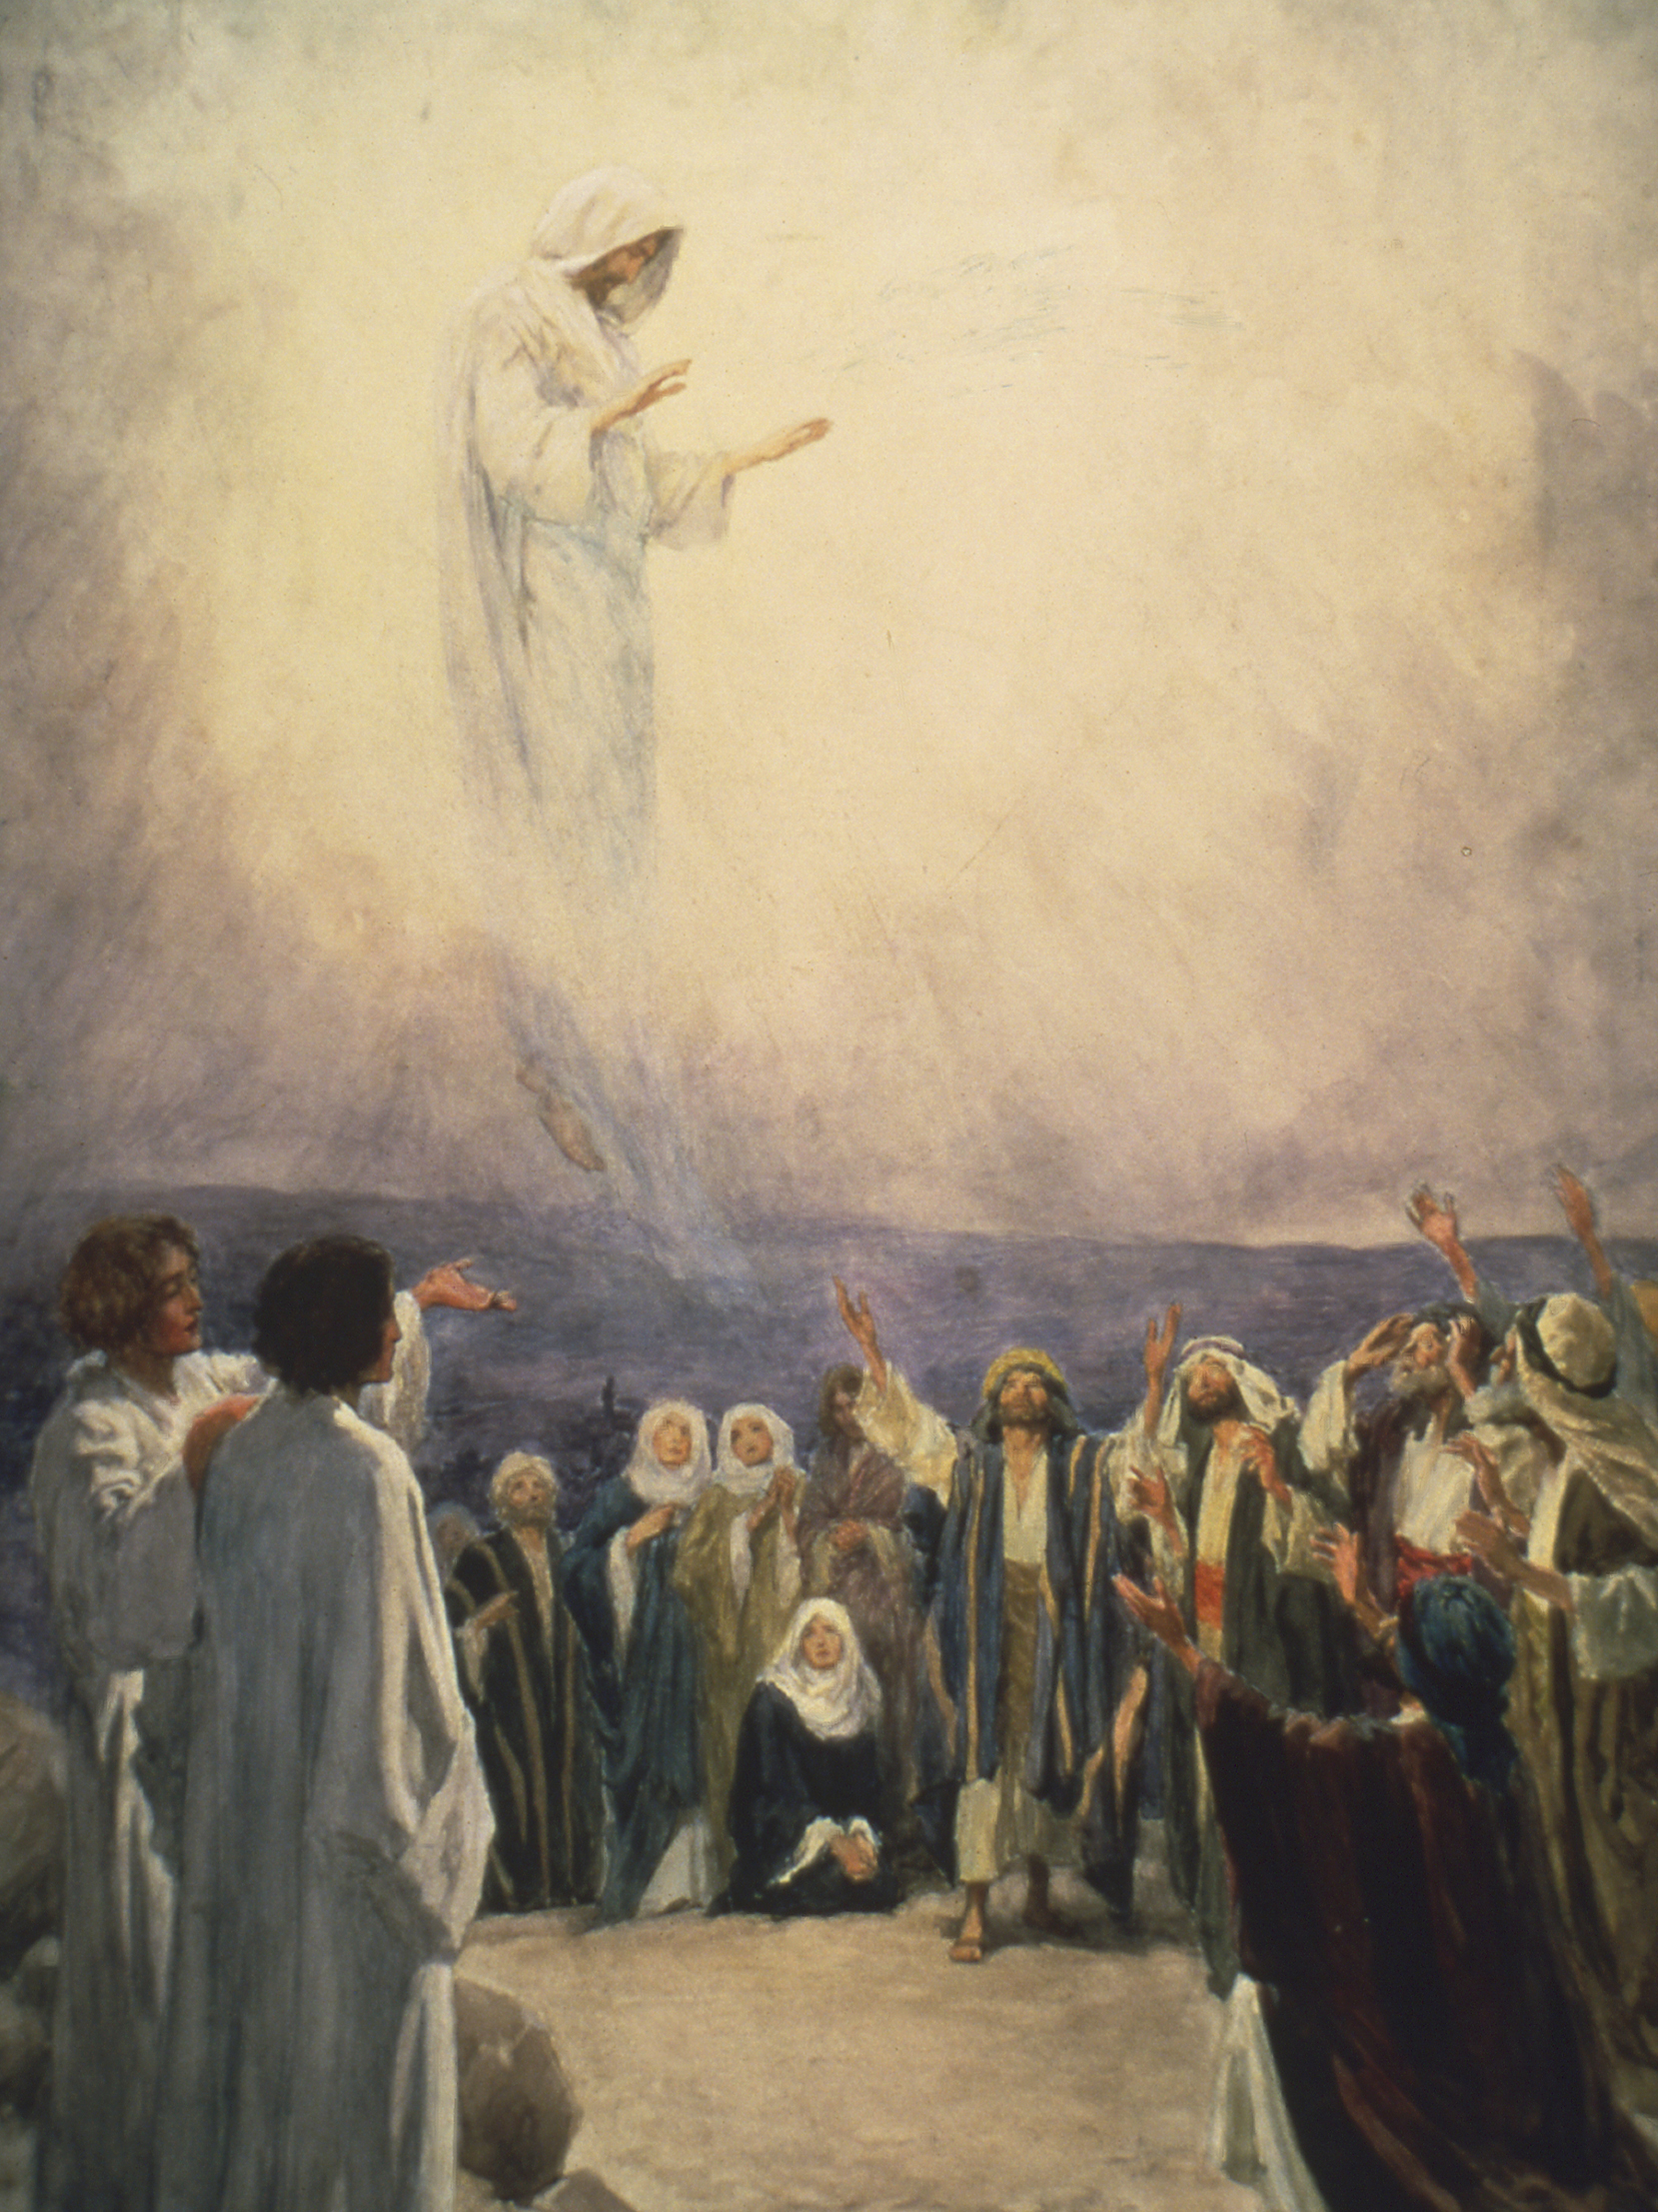 The Lord's Ascension, by William Henry Margetson.